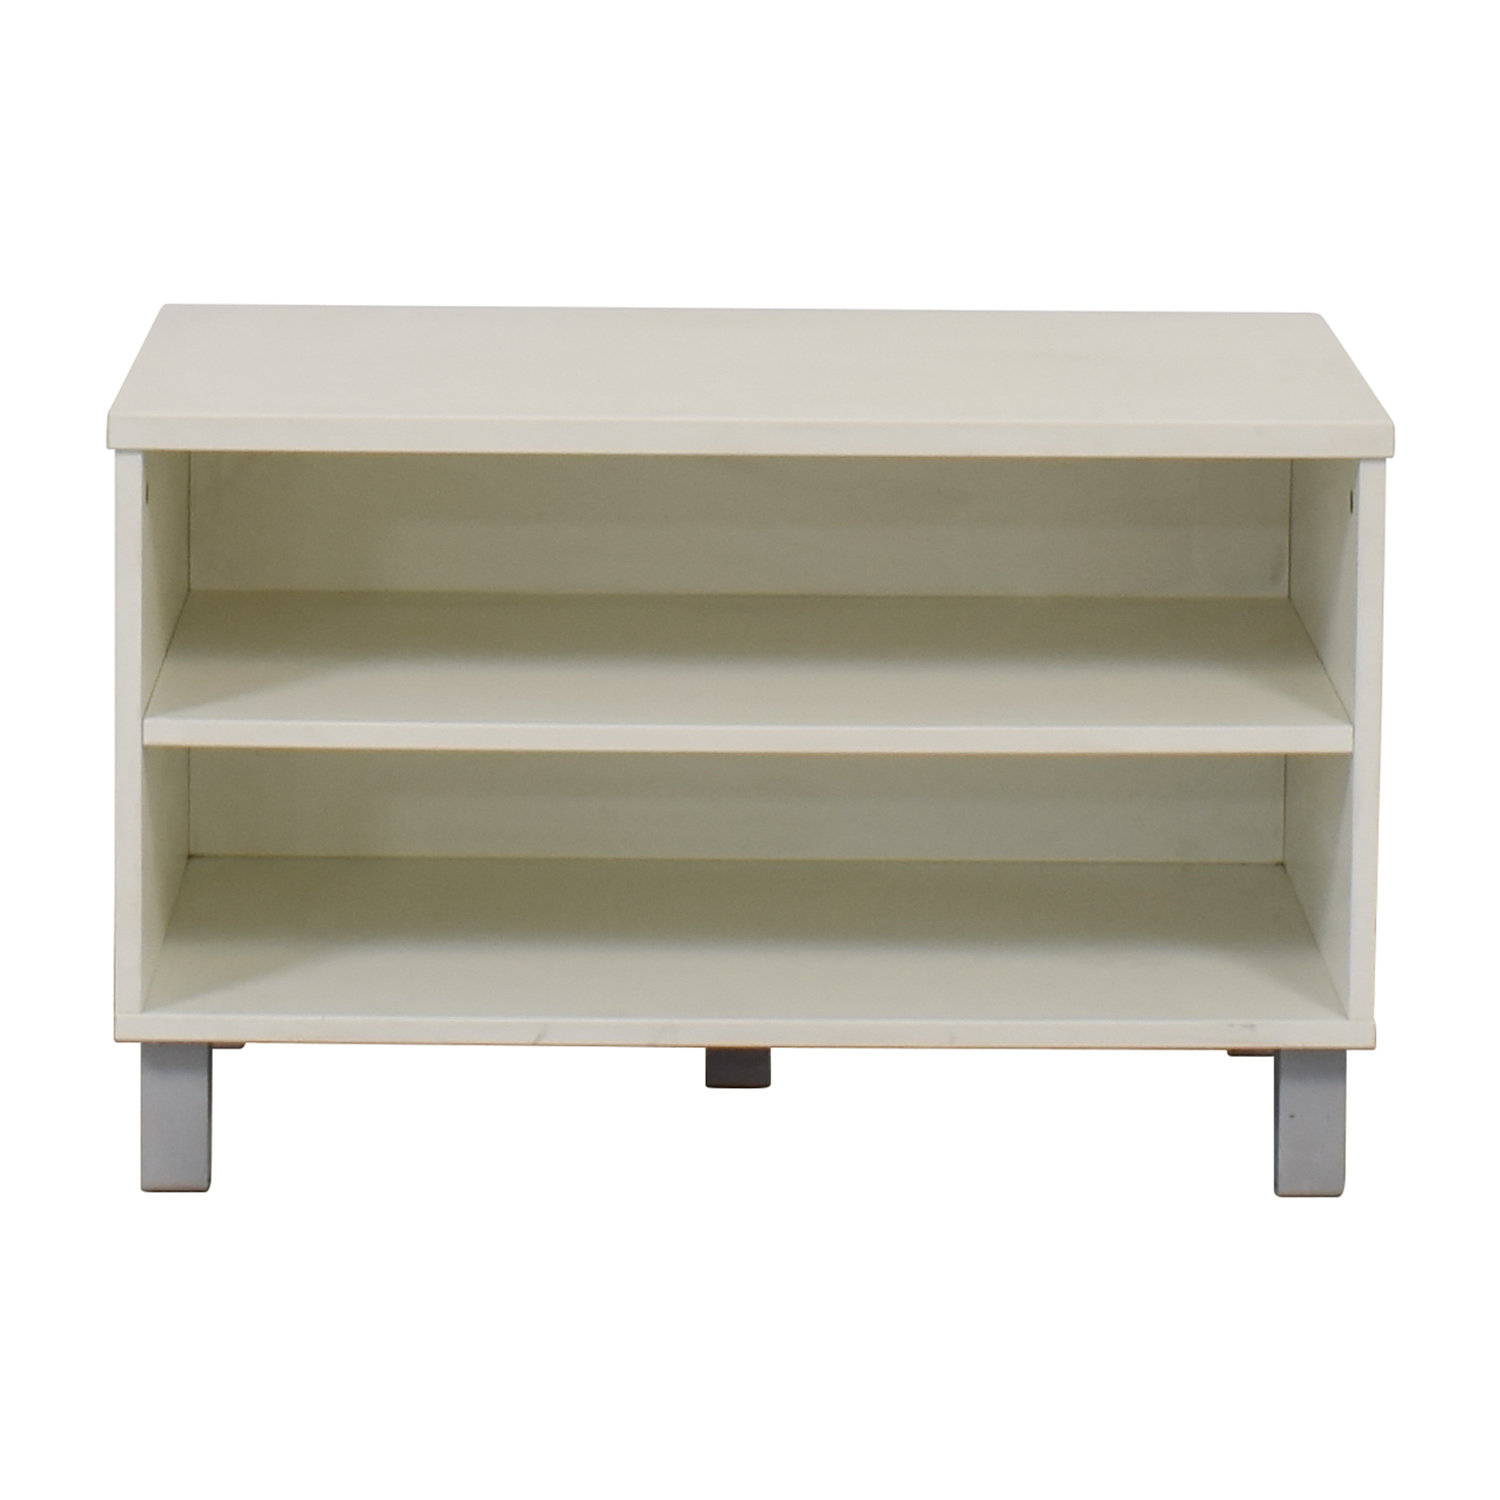 IKEA IKEA White Shelving Unit coupon